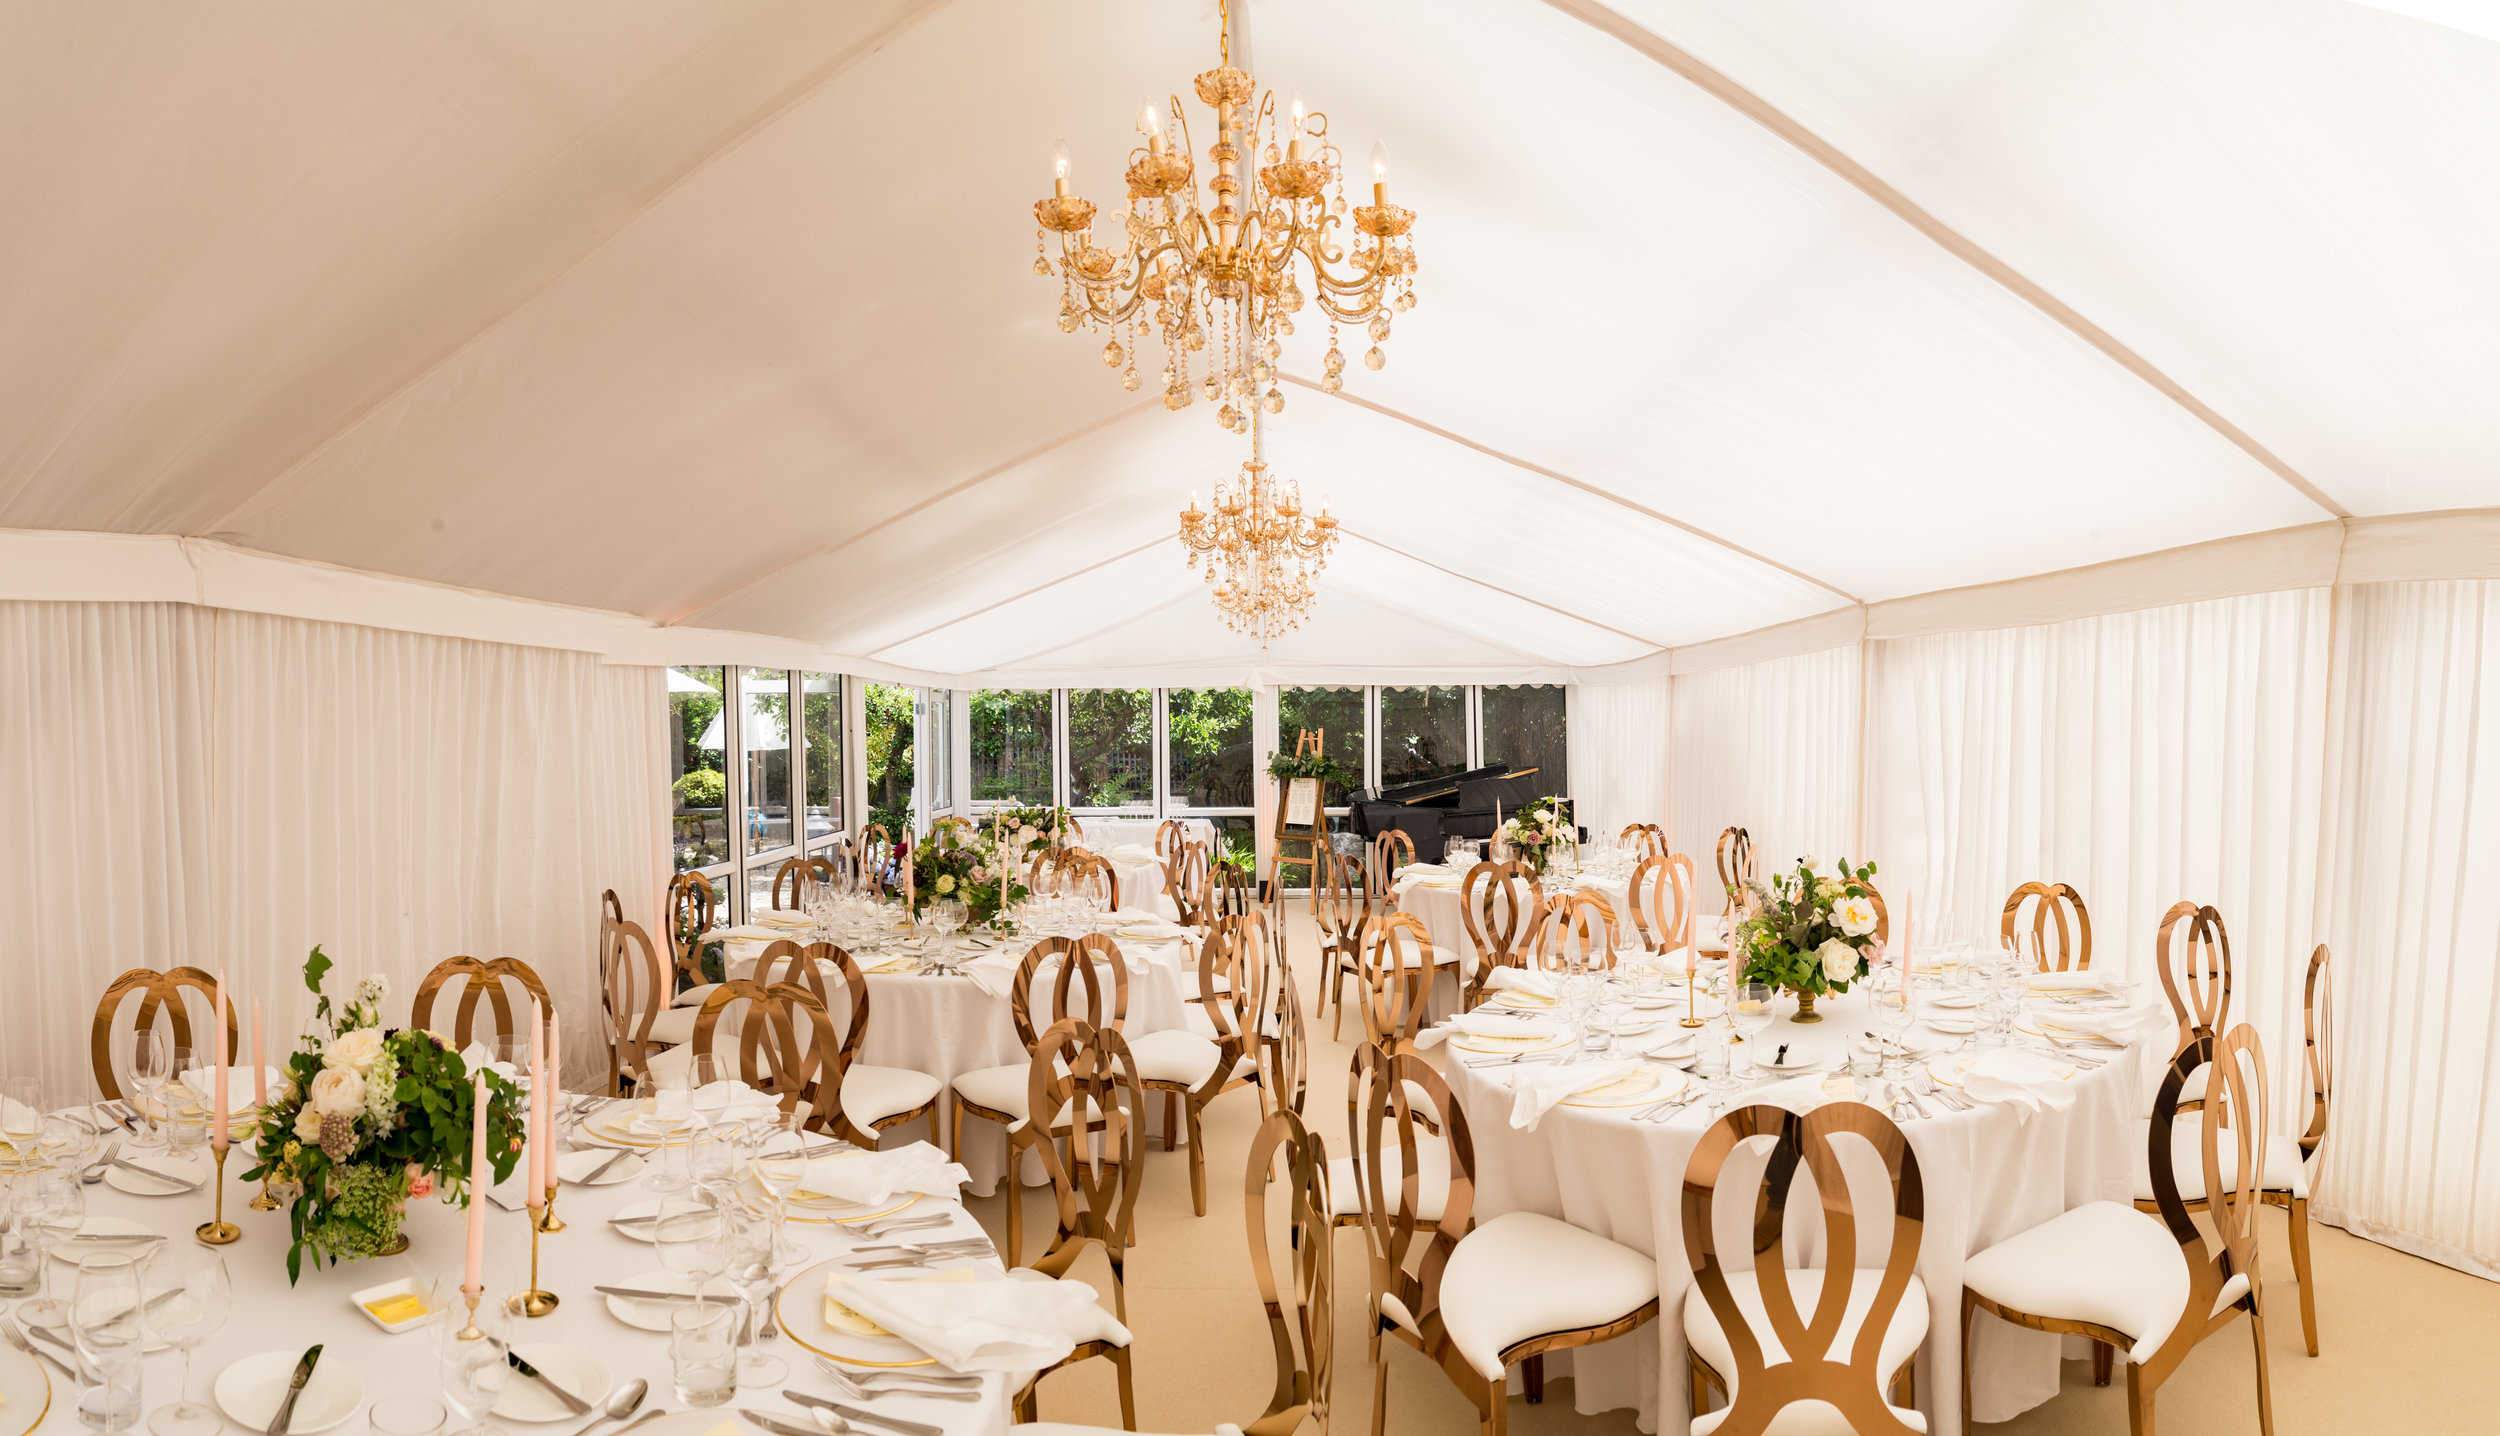 Maria Reidy Events | Opera lunch, Irish food, Marquee event